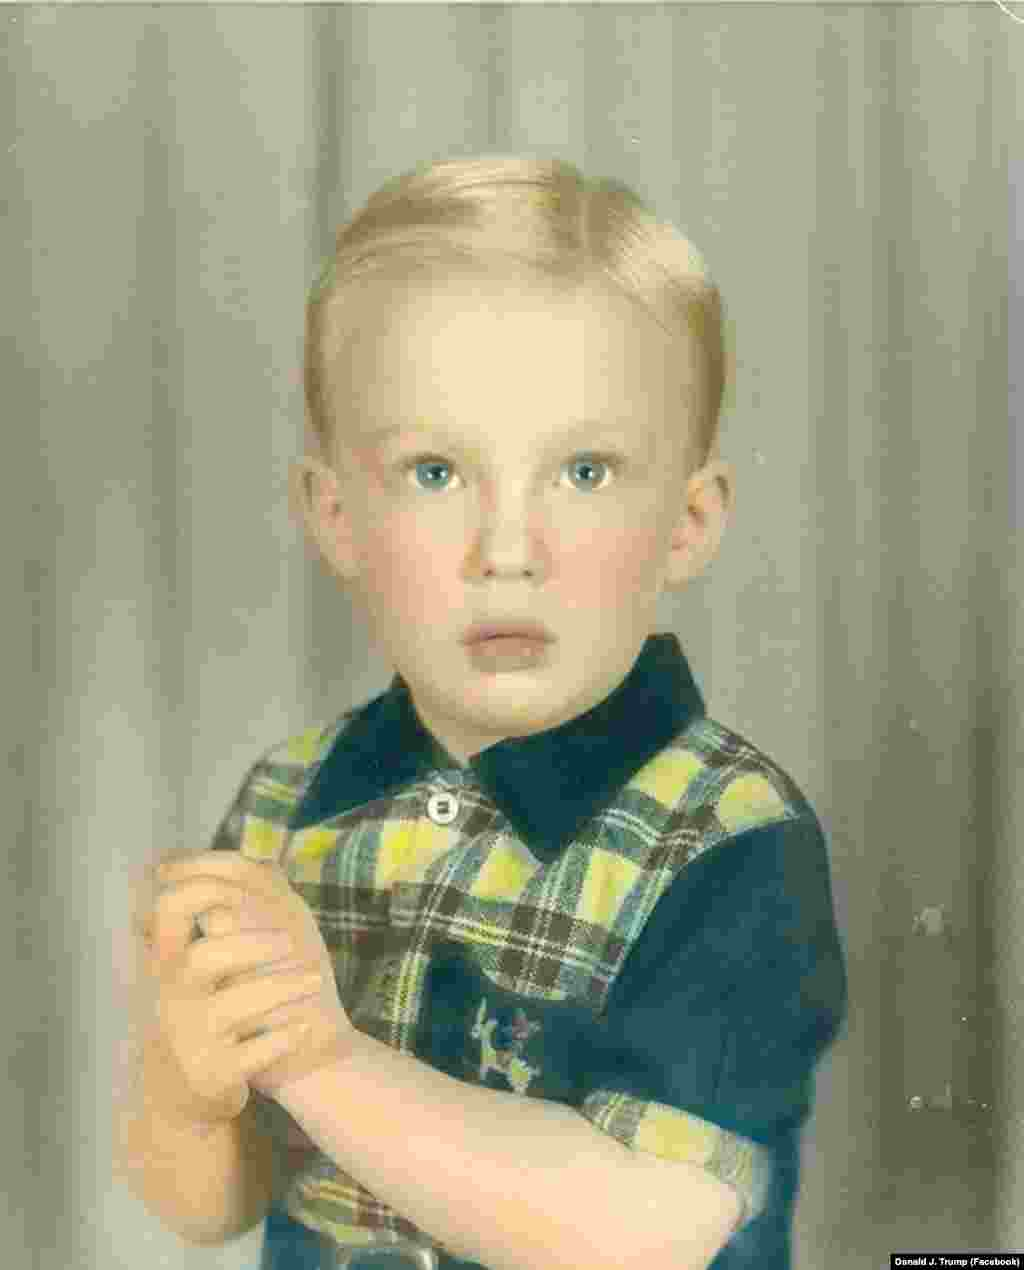 Donald Trump was born into a wealthy New York family in 1946. (undated photo)